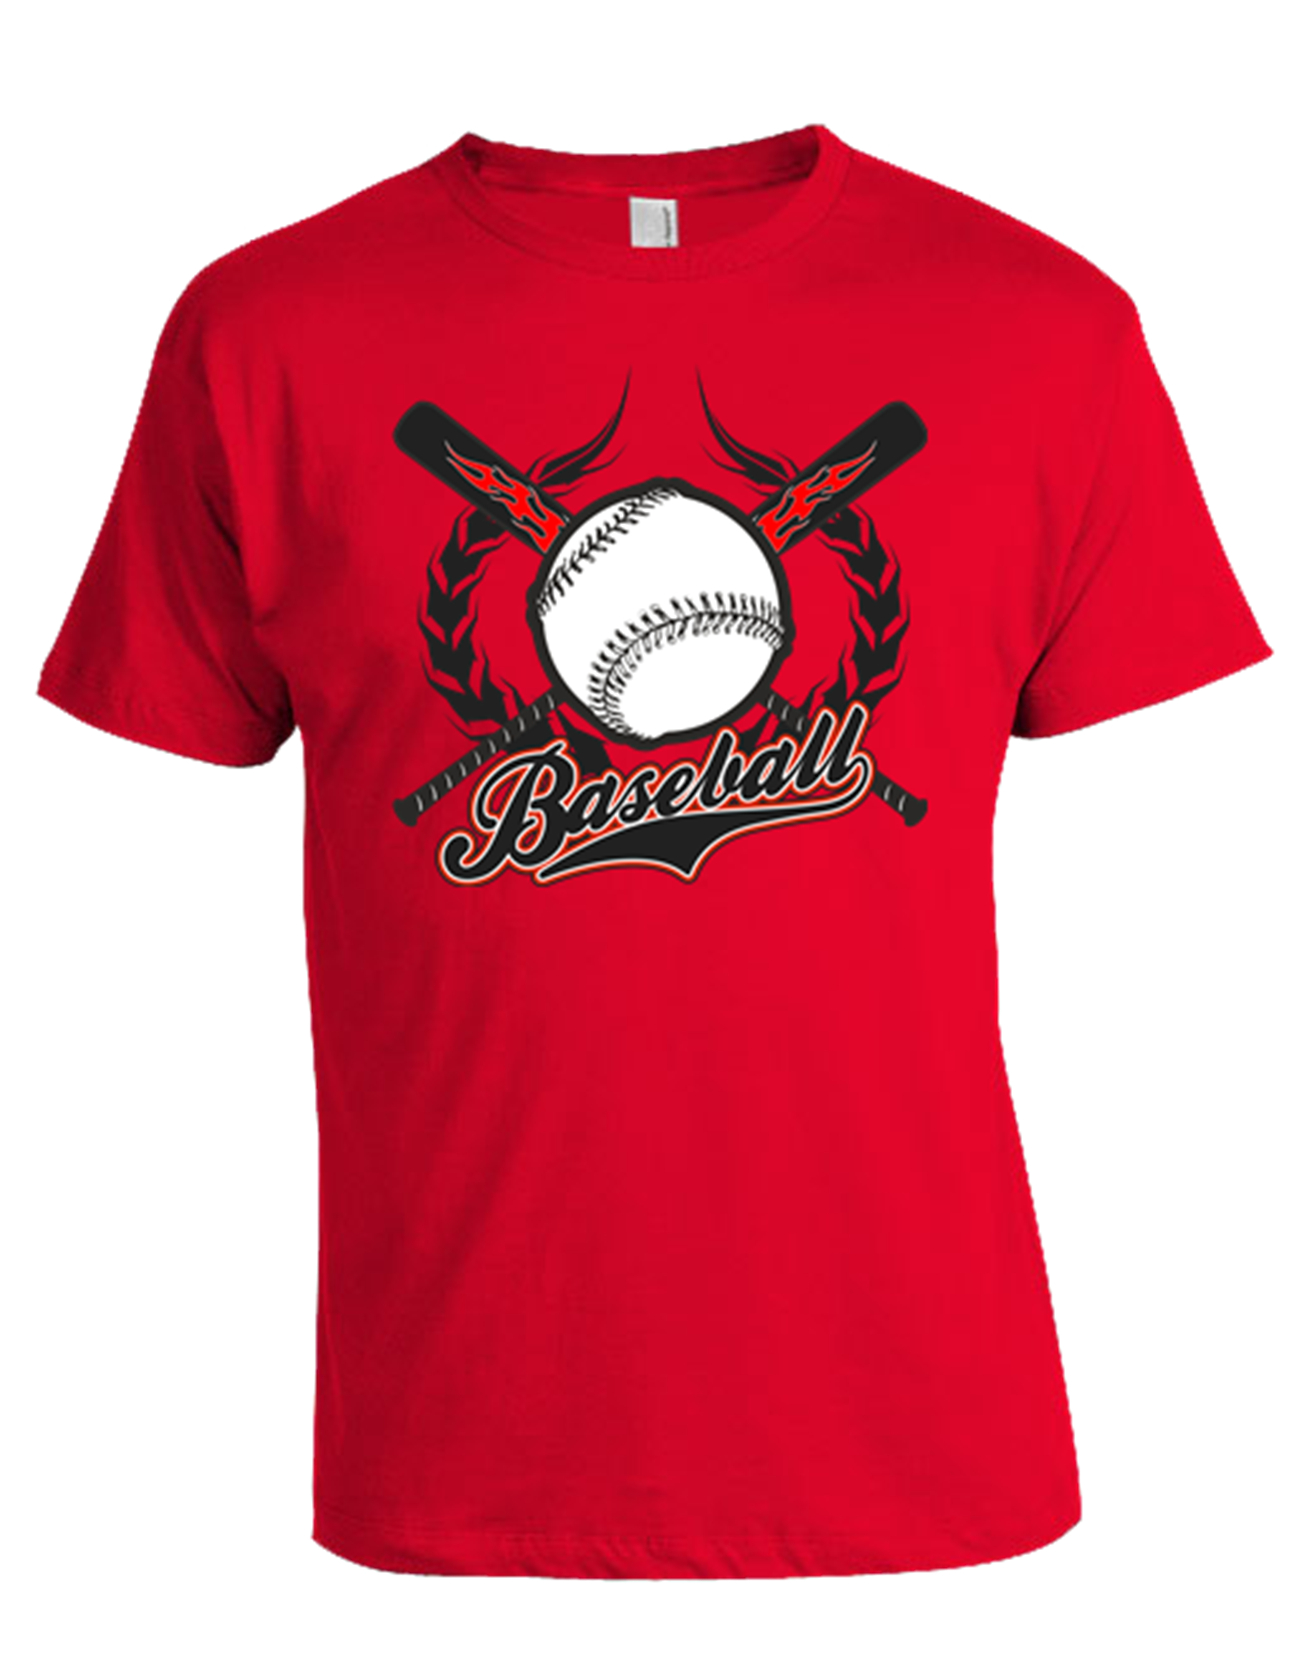 Baseball t shirt design ideas baseball shirt design ideas Designer baseball shirts